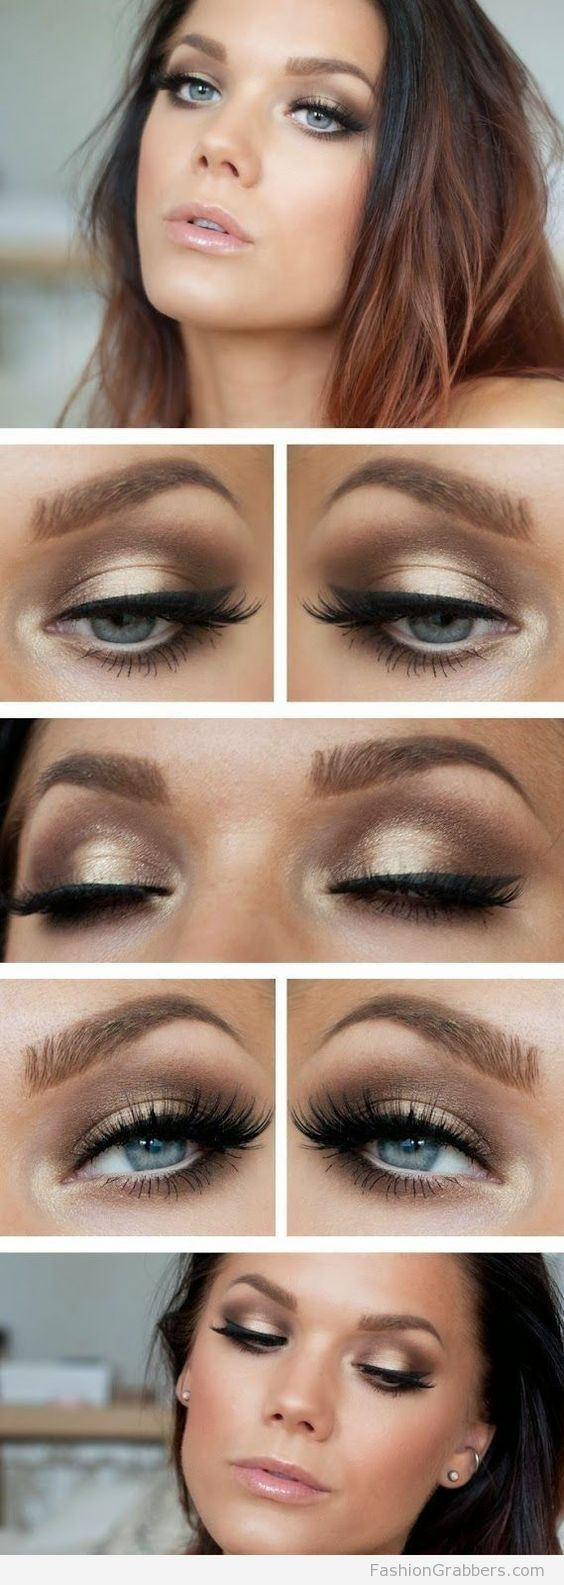 Evening Makeup Ideas Including Natural, Simple Beauty Tips And Products That Will Save You Time And Money. We Cover Eyeshadows, Eyeliner, Eyebrows, Brows, Lipsticks and Lashes. Regardless Of Your Hair Style, We Have Step By Step Tutorials, Tips And Tricks That Will Give You Inspiration. These Are The Best New Evening Makeup Ideas And Eye Makeup Tutorials. Follow The Guides For Quick And Easy Evening Make Up Looks.